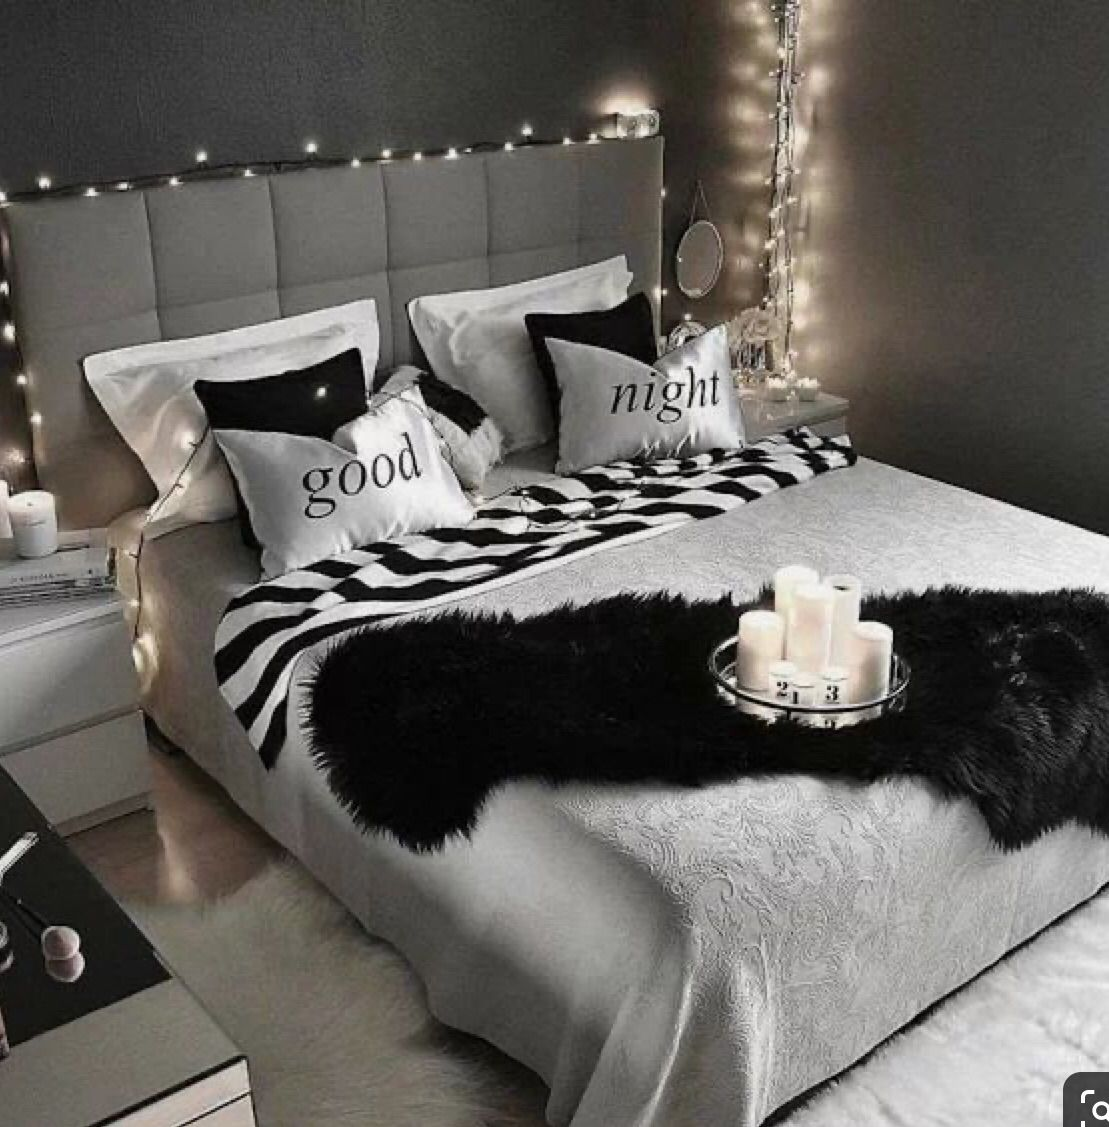 The Black And White Concept Bedroom Decor Room Ideas Bedroom Master Bedrooms Decor